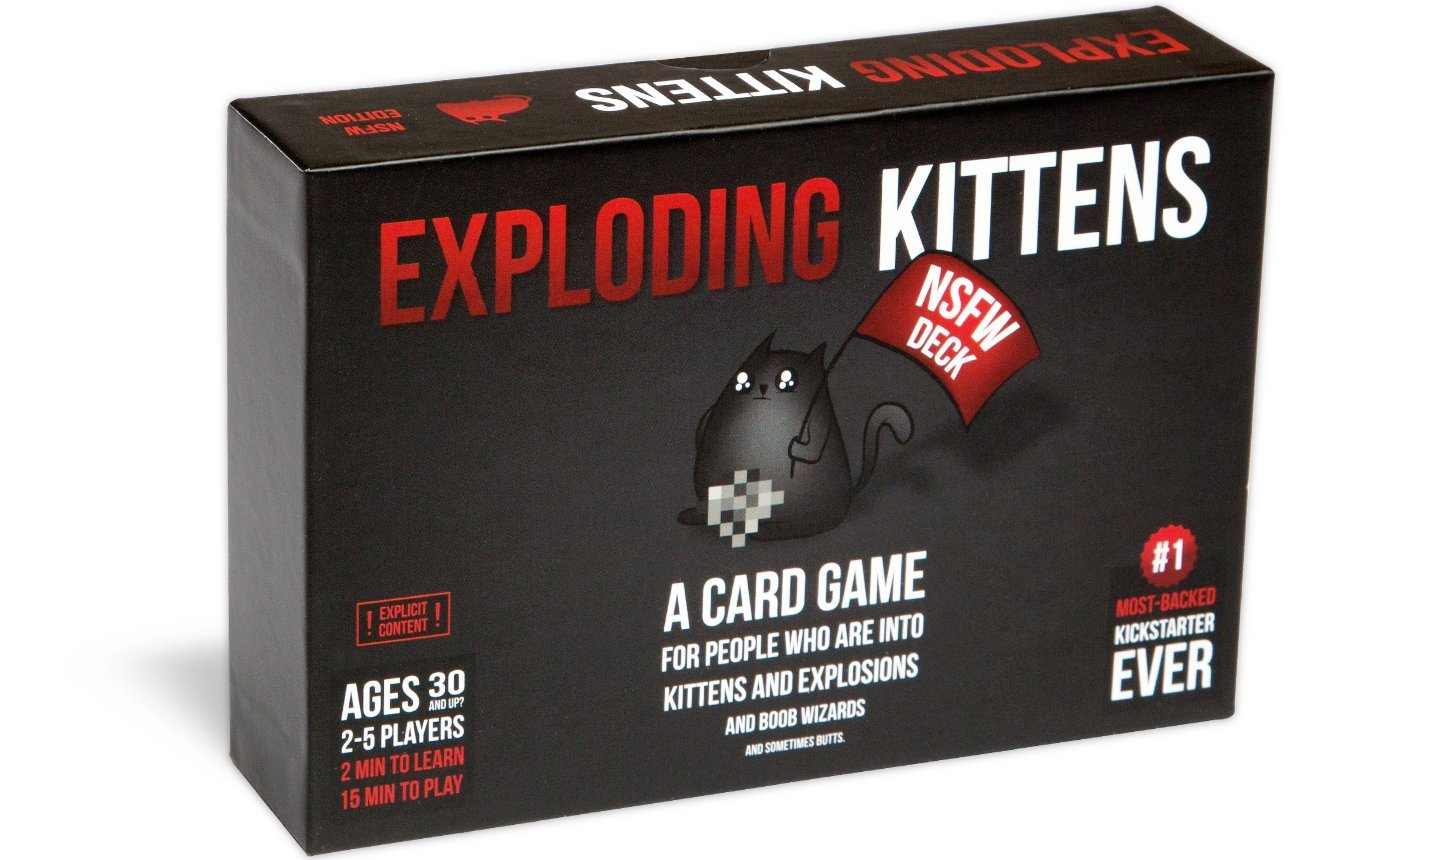 Exploding Kittens https://amzn.to/2PqWXPc